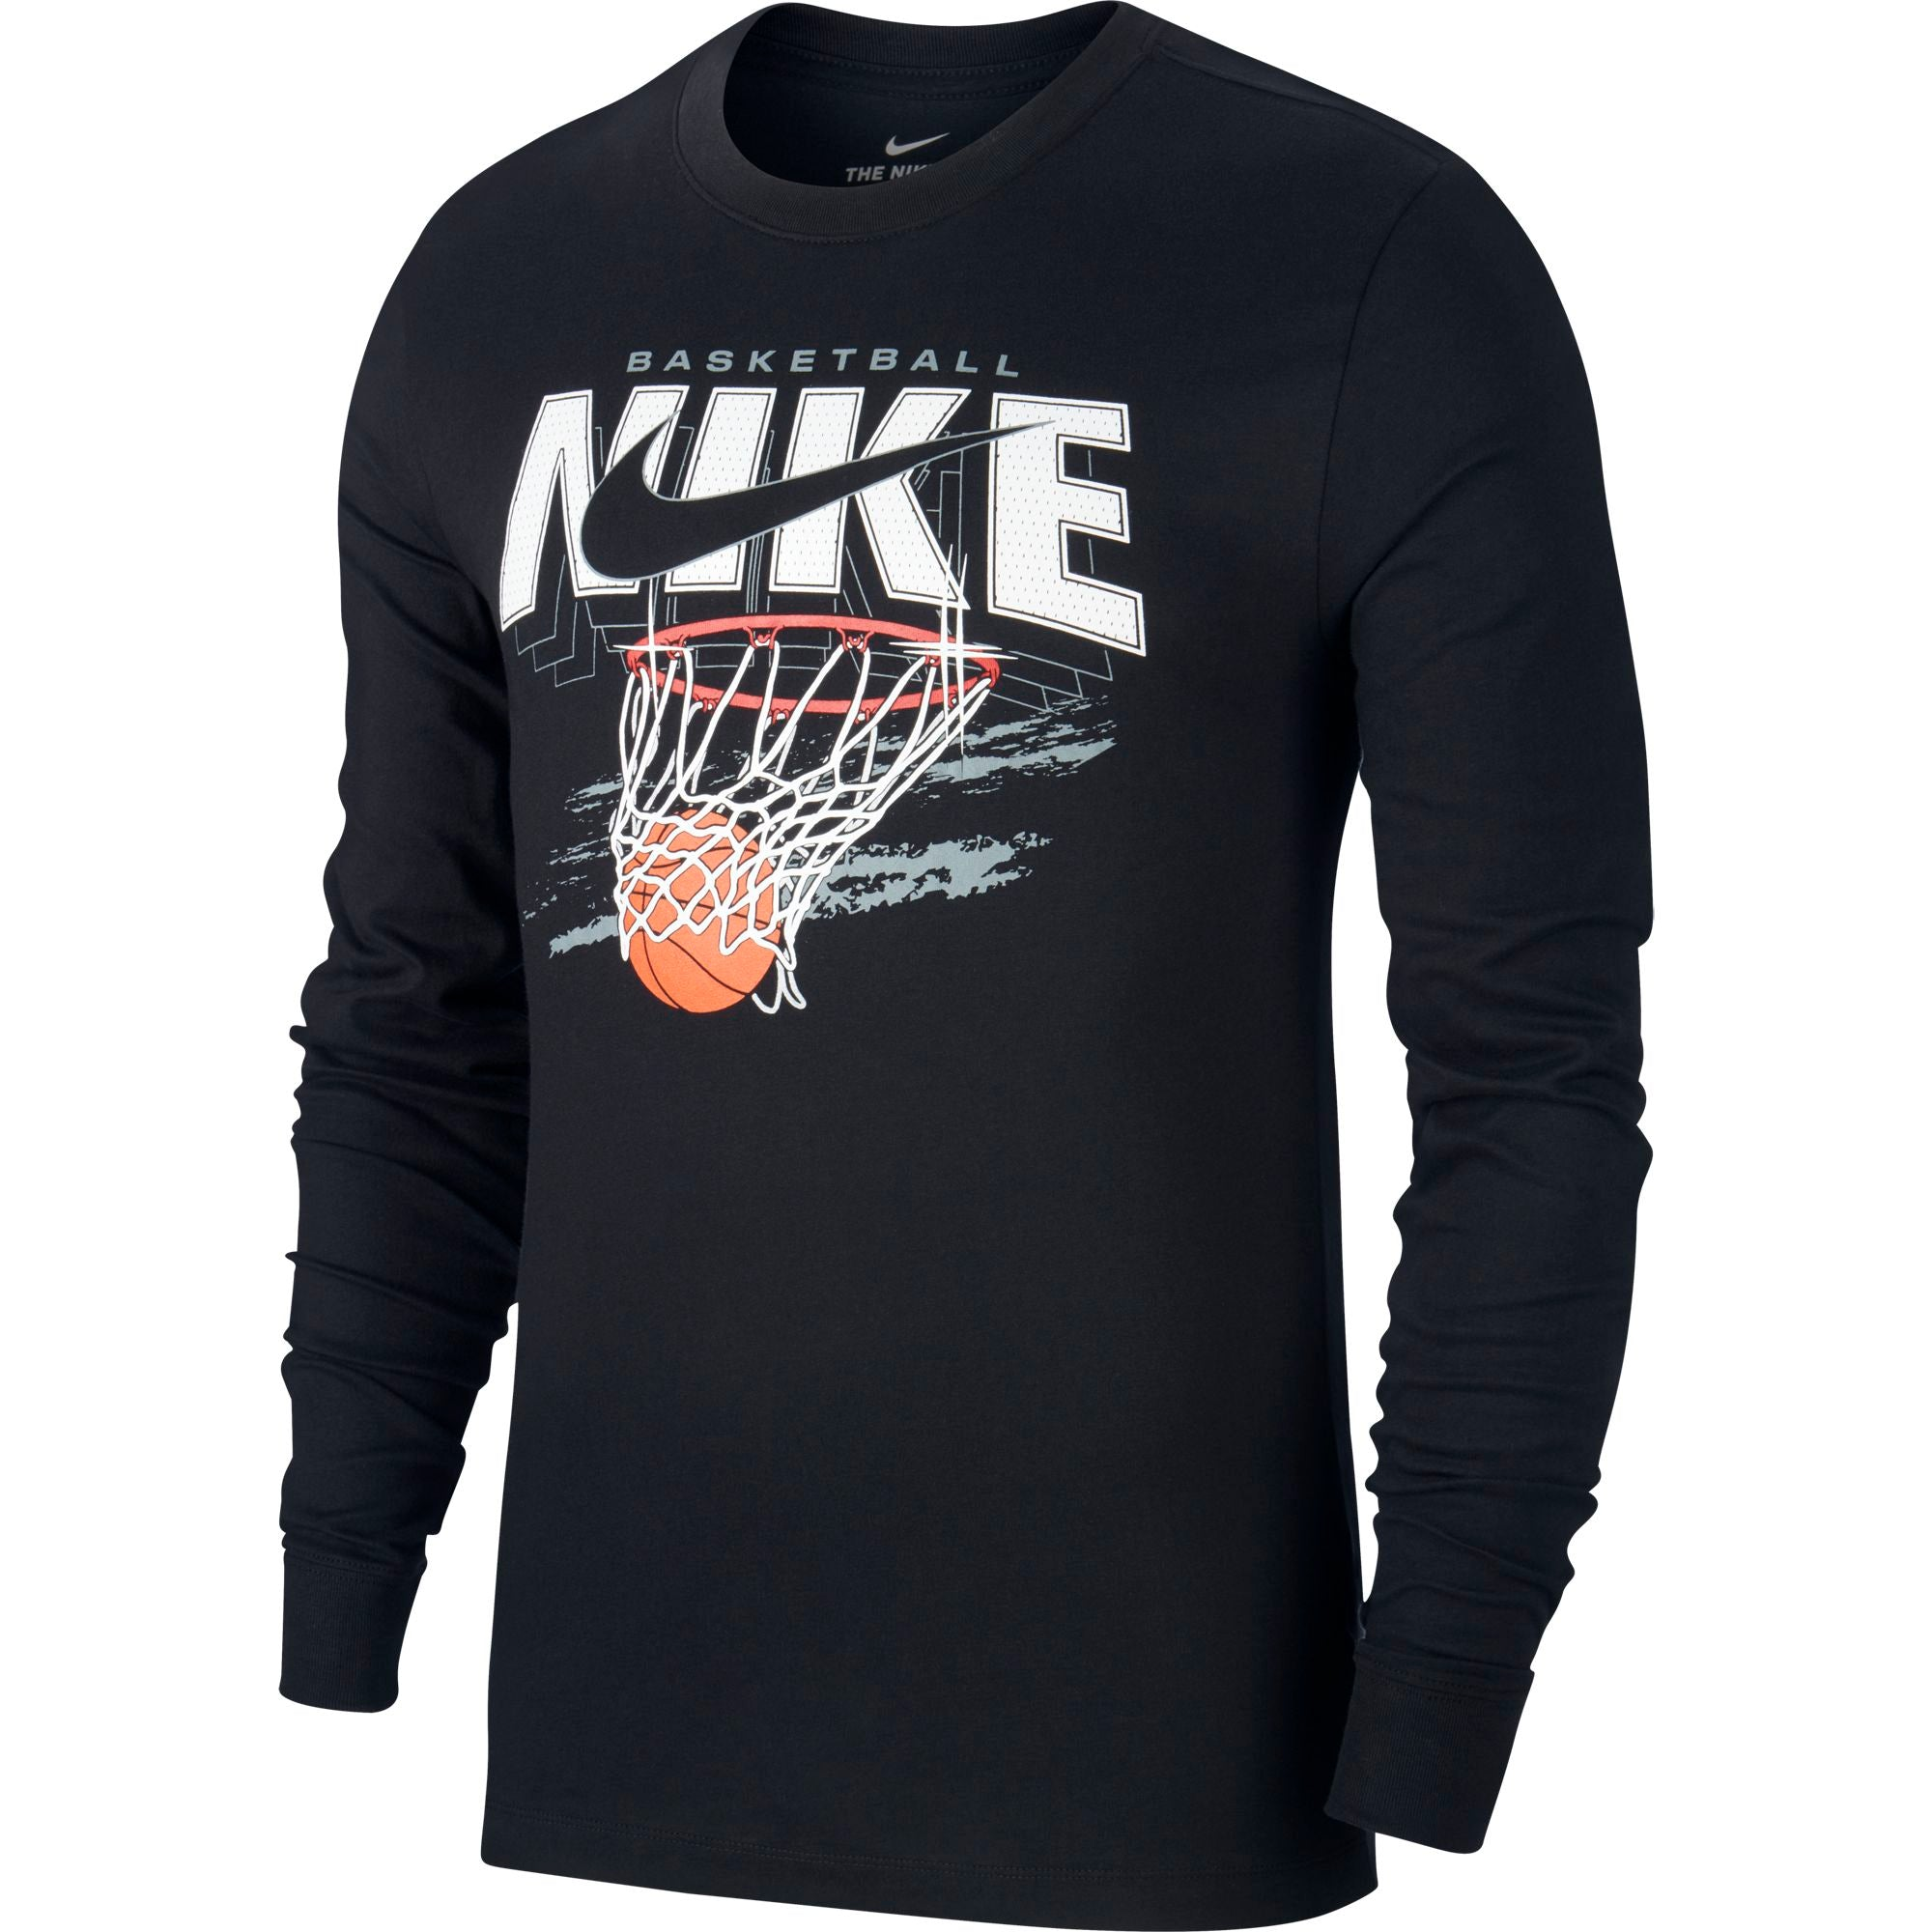 "Nike Basketball Dri-fit Long-Sleeved ""SWISH"" Tee - NK-CD0943-010"